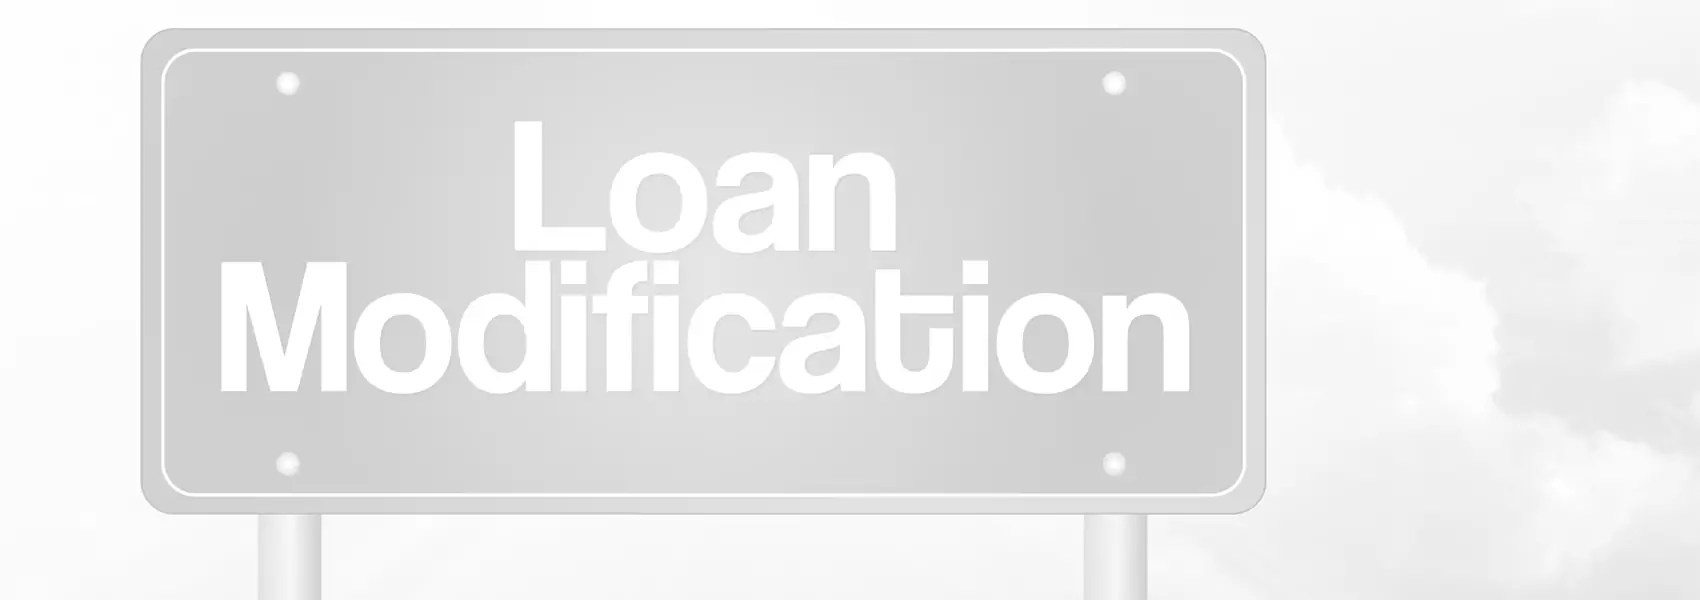 Loan Modification Leads Best Case Leads  Best Case Leads